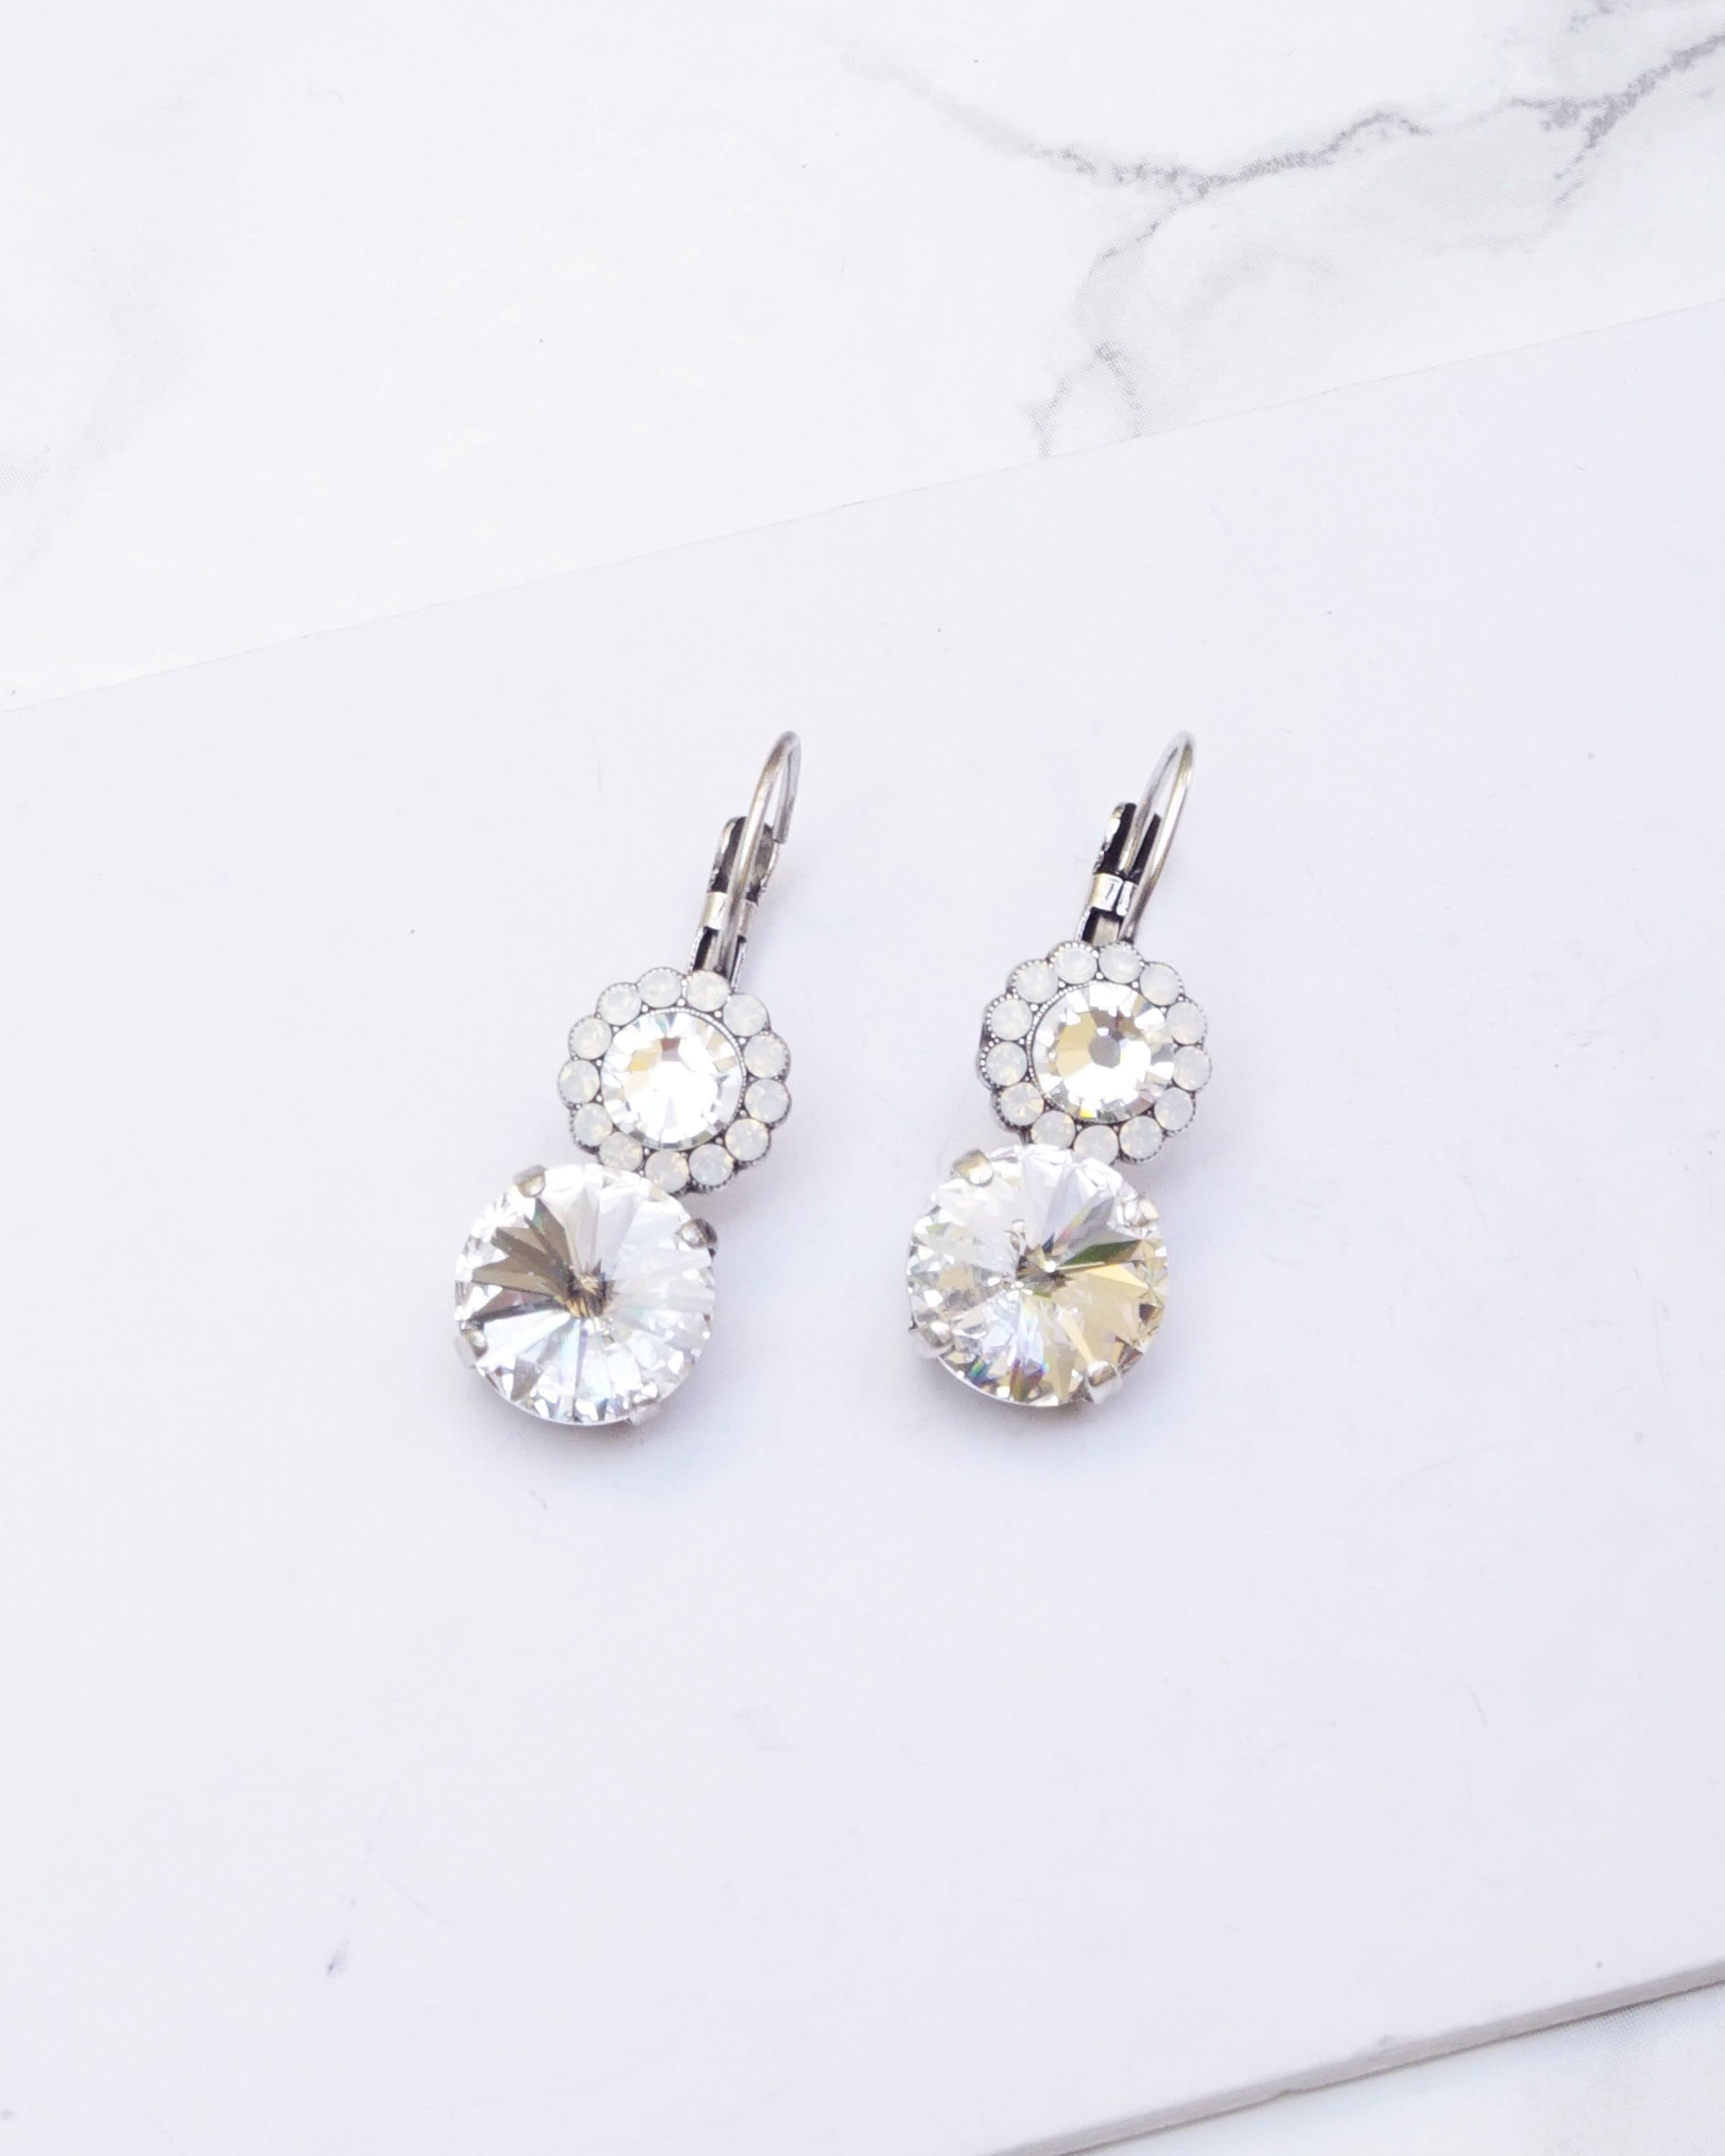 The Best Wedding Earrings Bridesmaid Silver Hook Earrings White 10mm Swarovski Crystal Jewelry & Watches Bridal & Wedding Party Jewelry